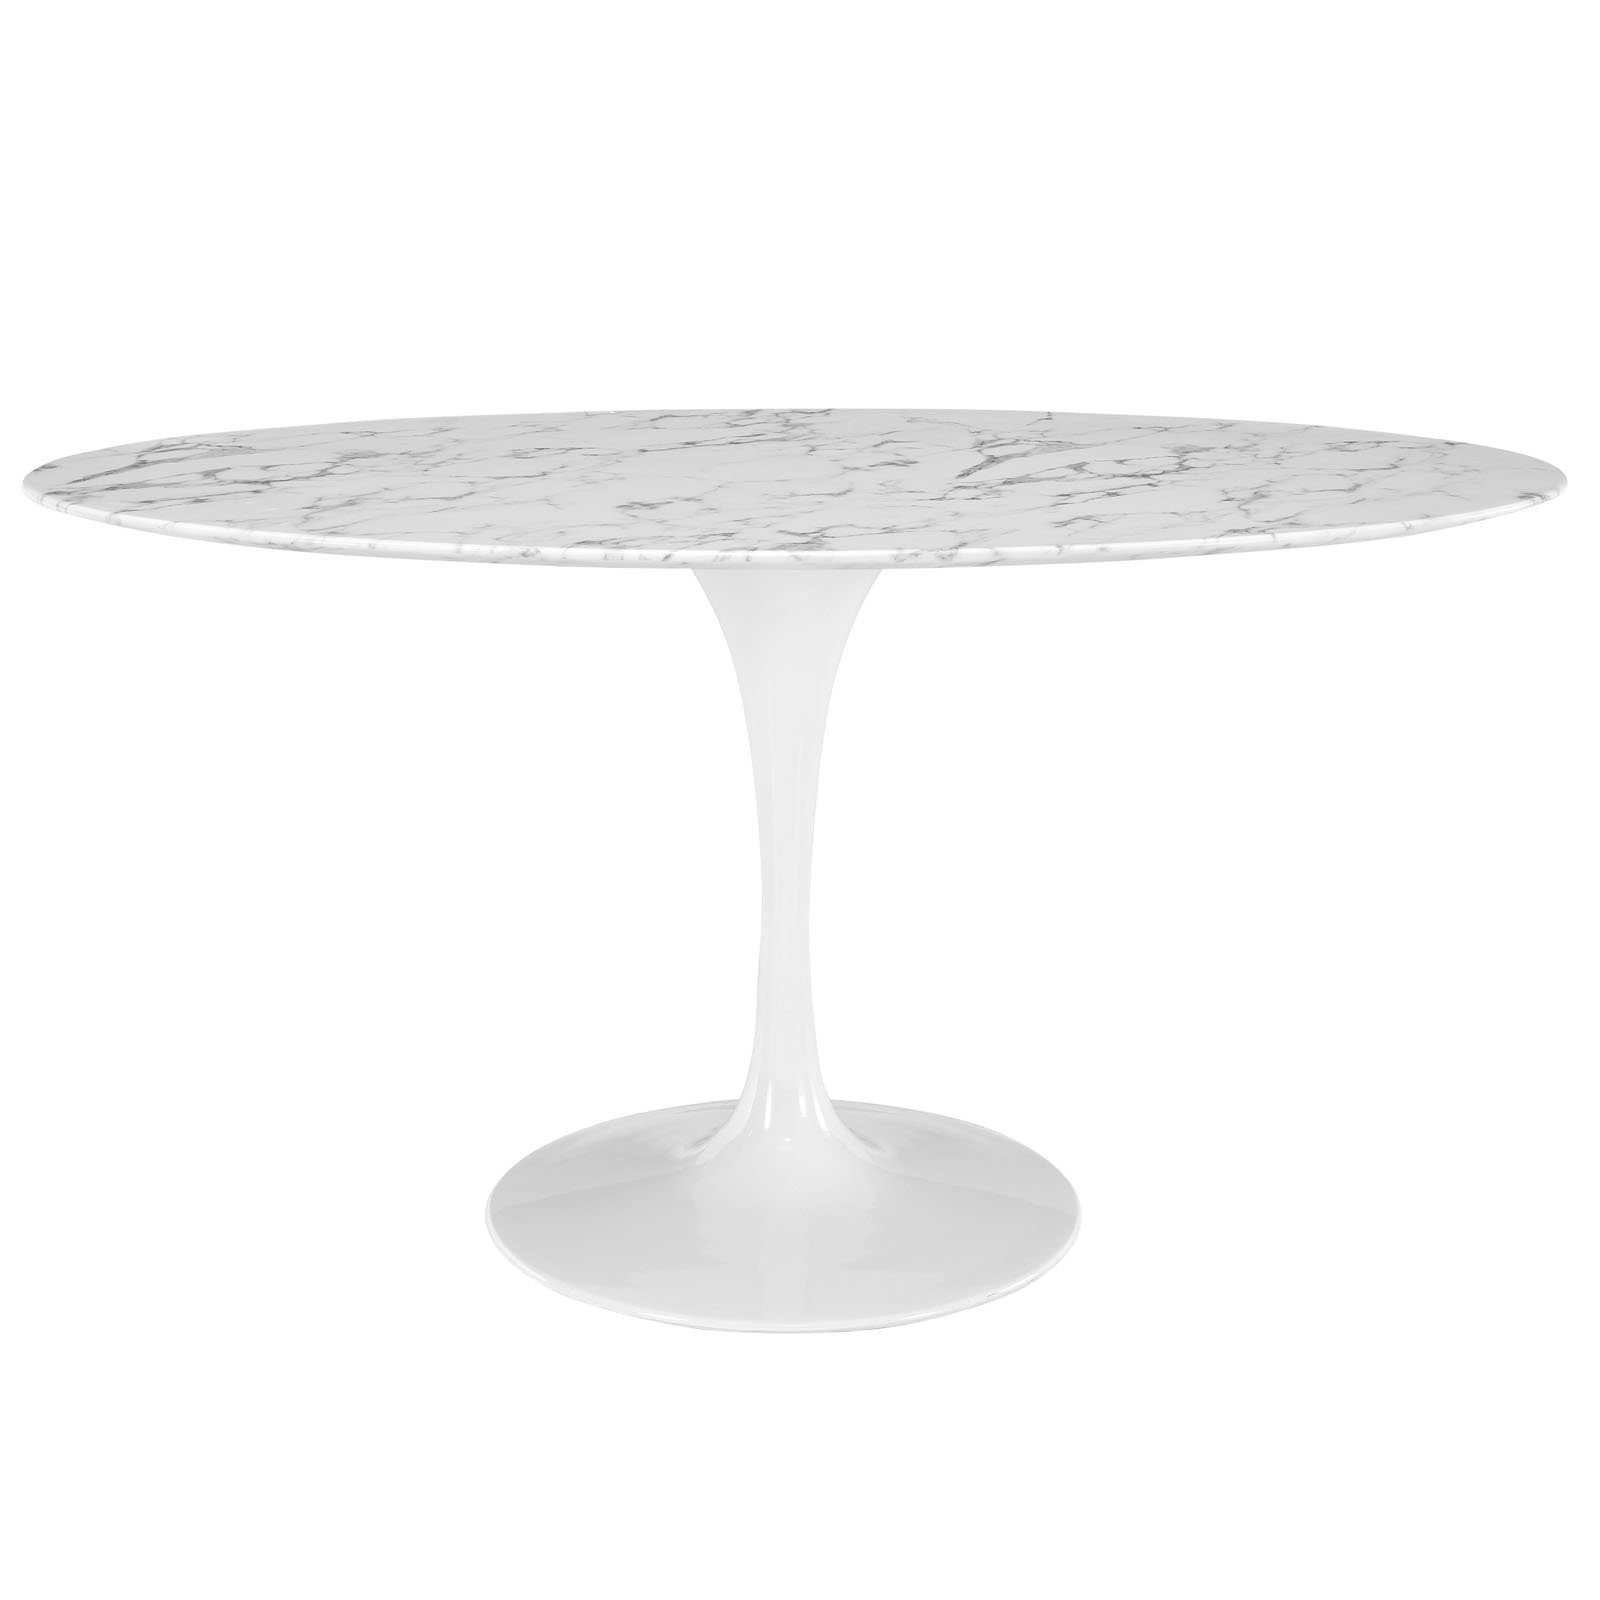 Modway Lippa 60'' Oval-Shaped Artificial Marble Dining Table in White